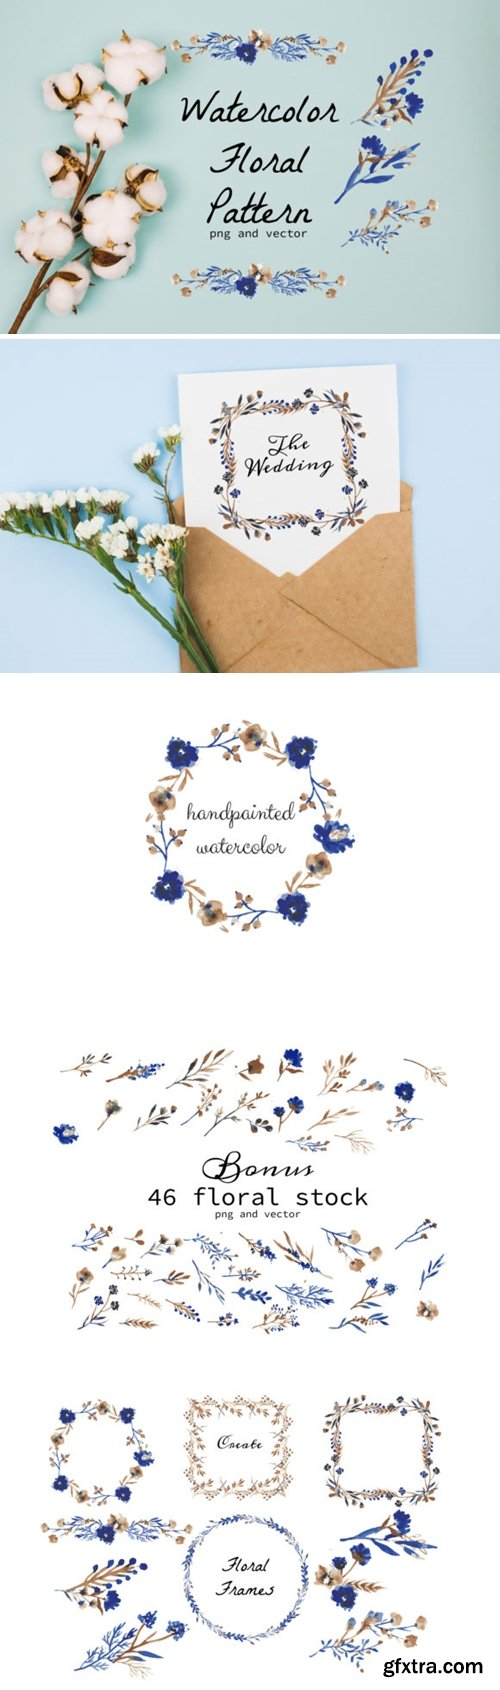 Watercolor Floral Wreath and Stock 1616484